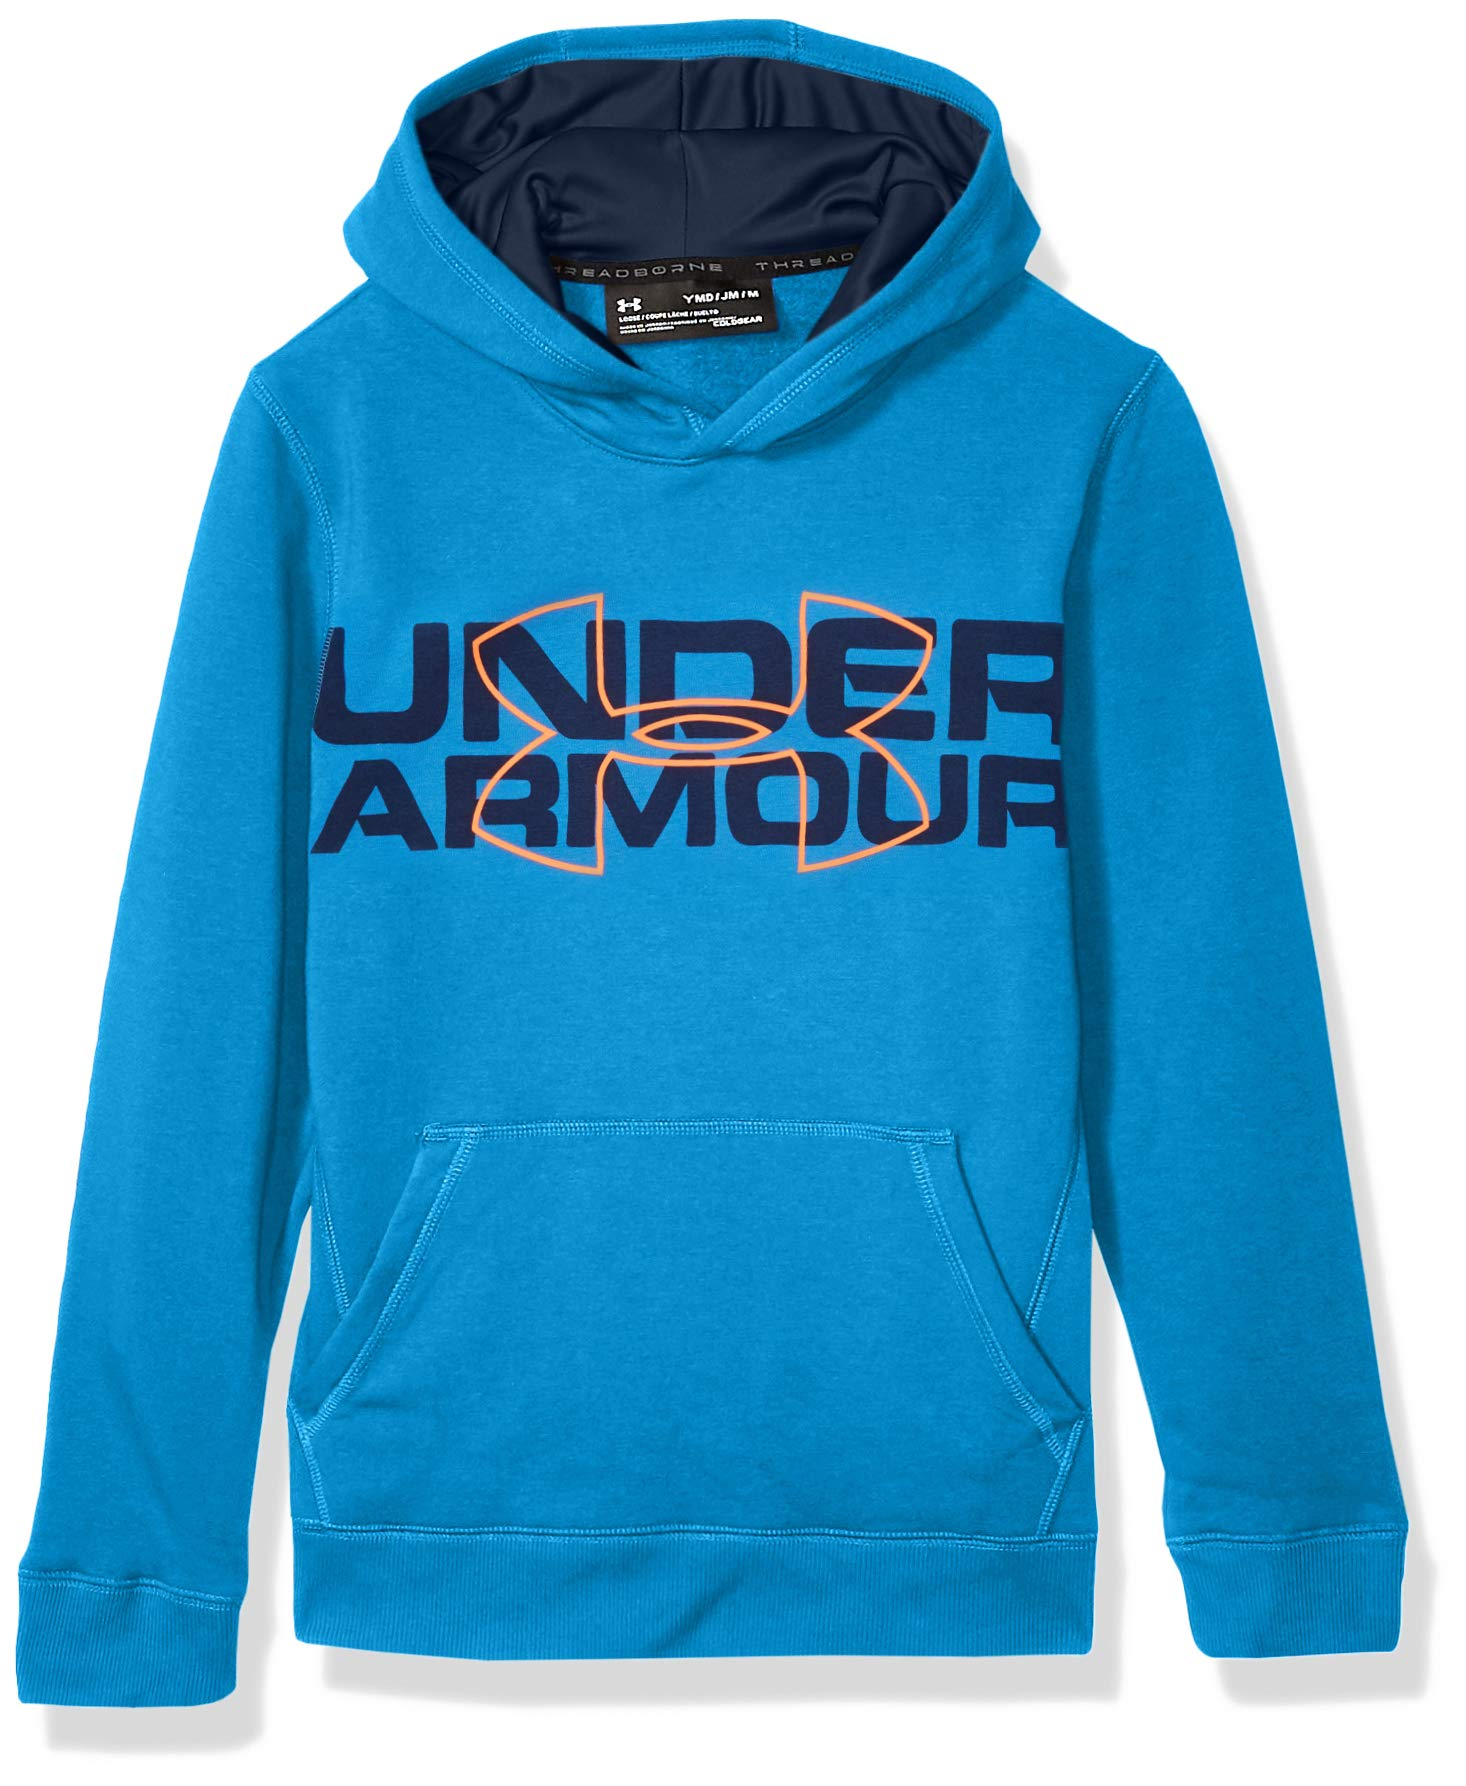 Under Armour Boys' Threadborne Logo Hoodie, Mako Blue /Magma Orange, Youth Medium by Under Armour